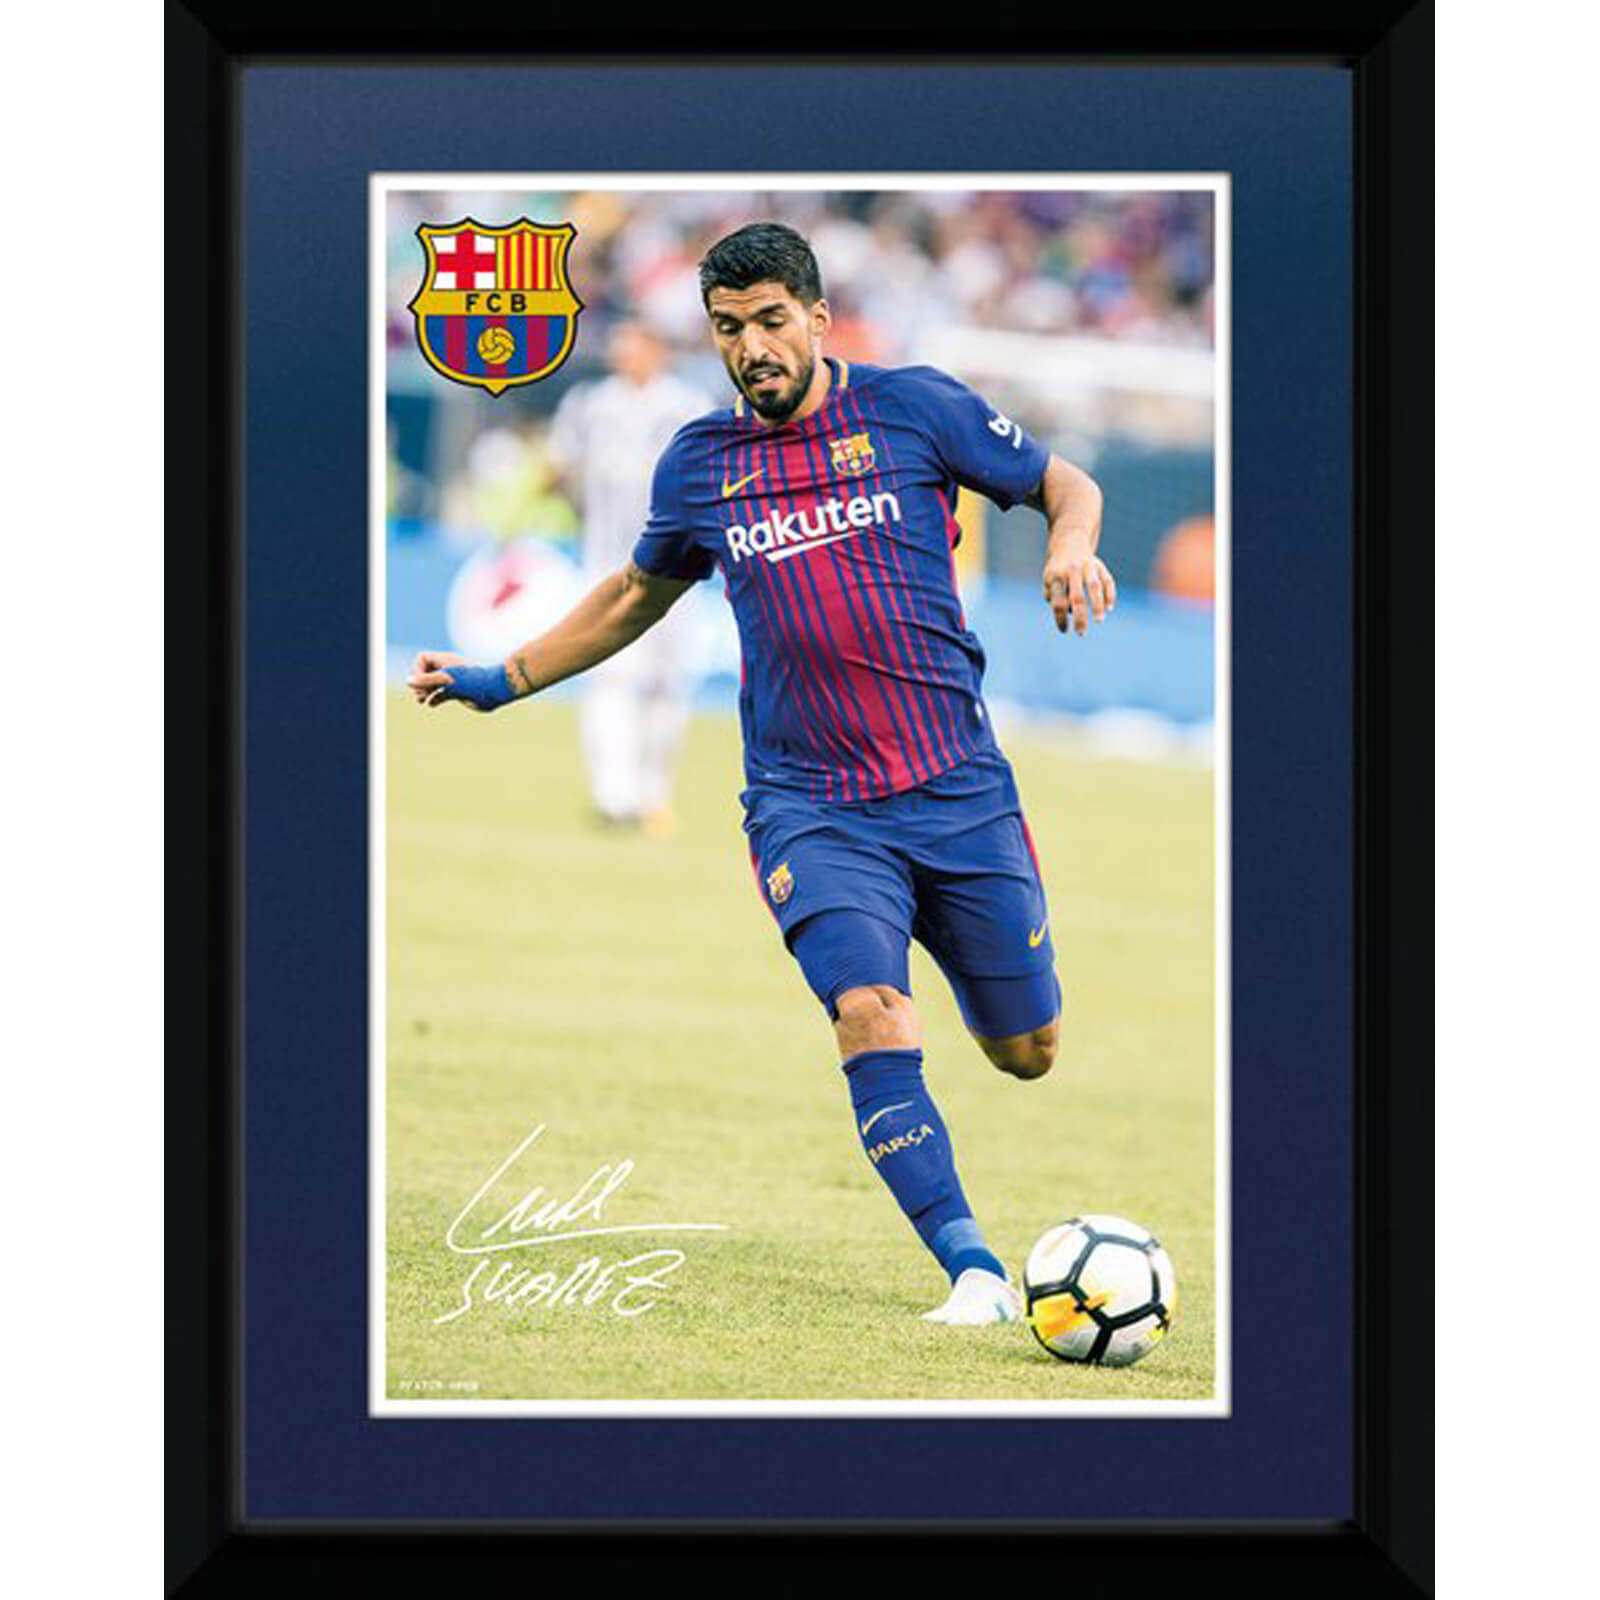 Barcelona Suarez 17/18 8 x 6 Inches Framed Photograph